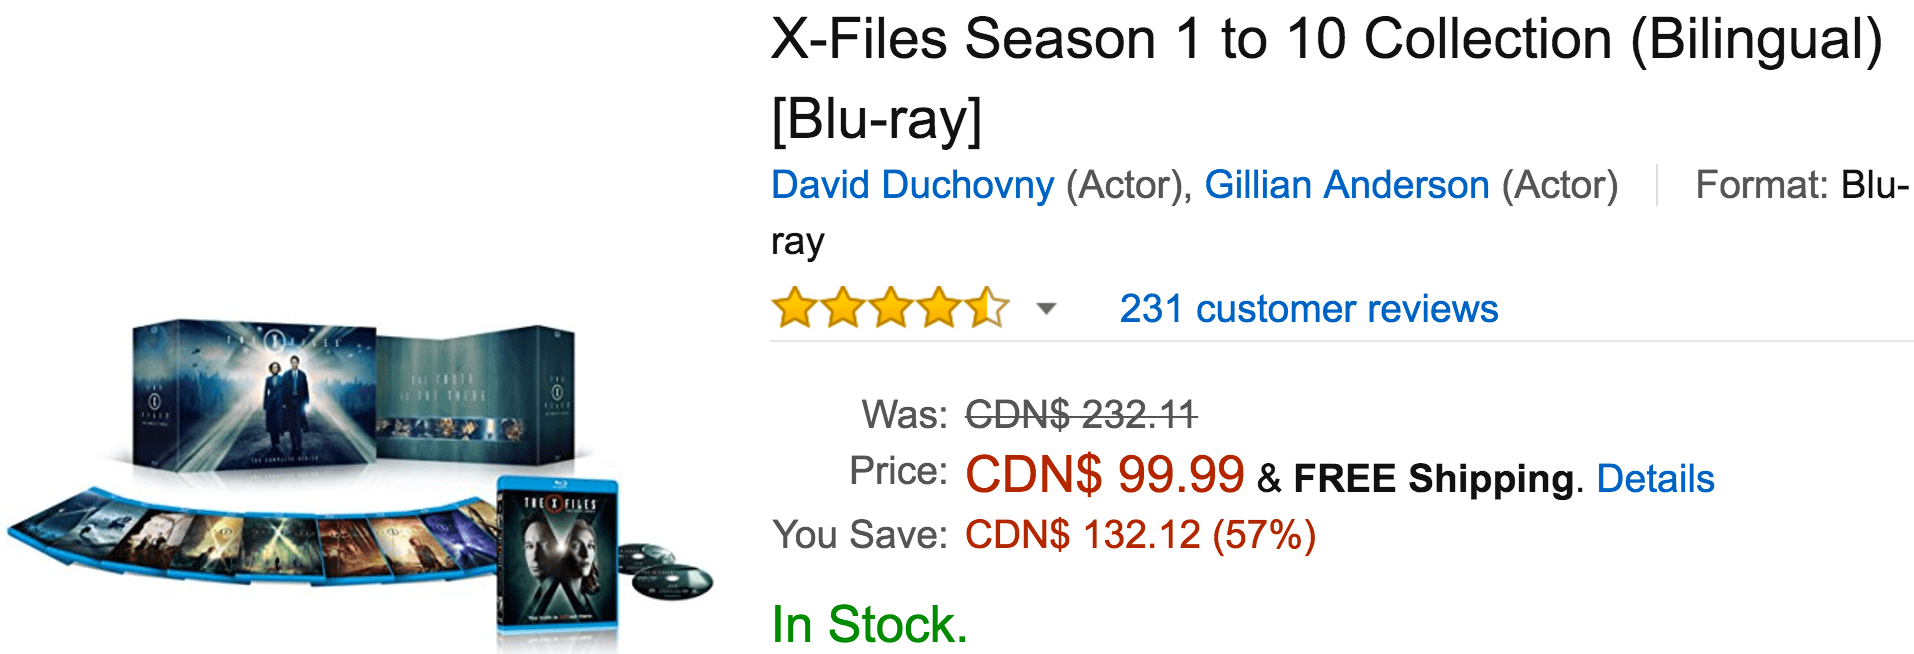 Amazon Canada Black Friday Deals: Save 57% On X-Files Season 1 to 10 Collection, 50% on Select Merrell Styles & More Offers